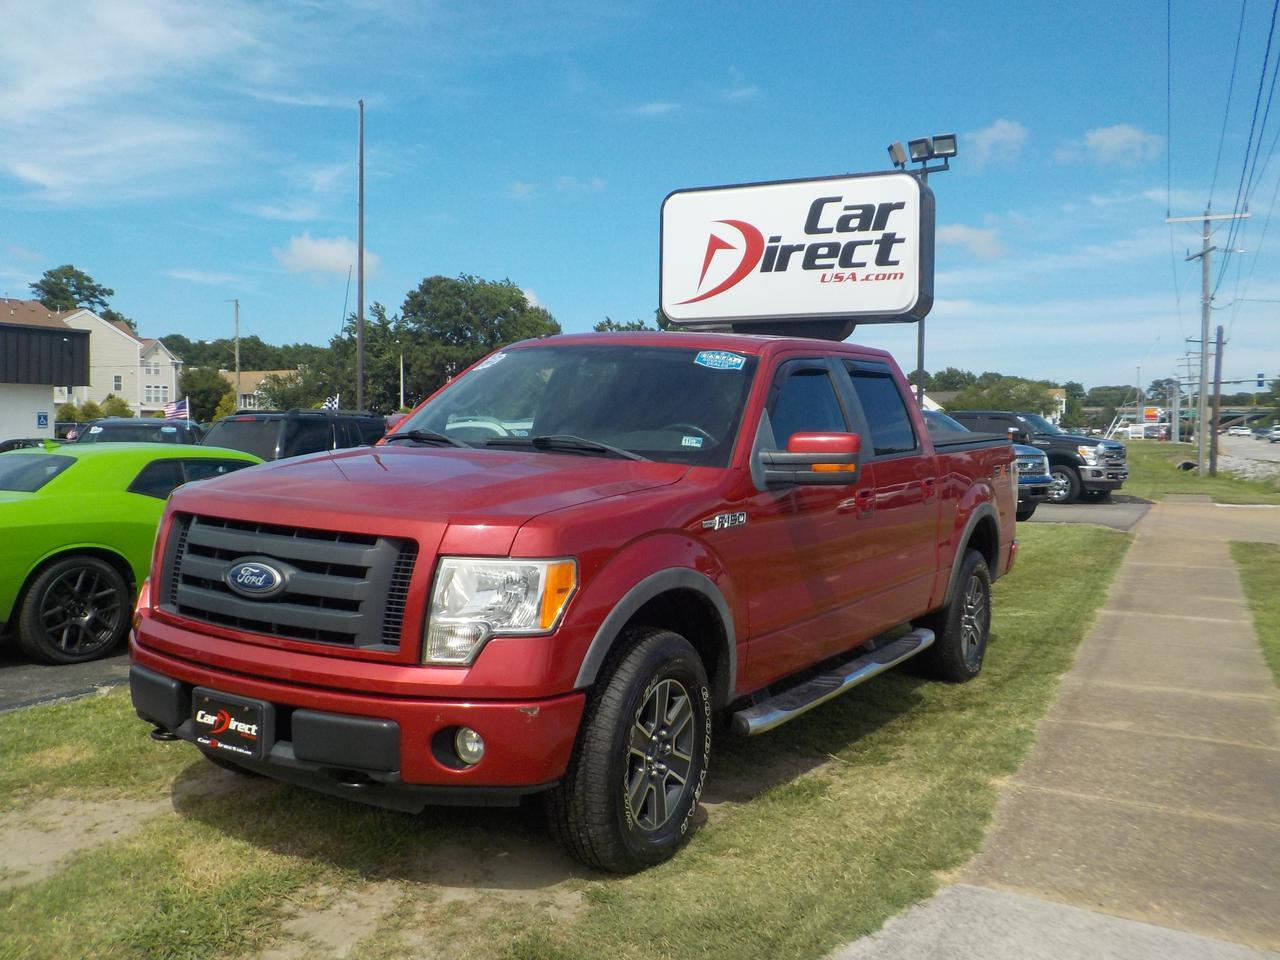 2010 FORD F-150 FX4 SUPERCREW 4X4, SONY SOUND, SOFT TONNEAU COVER, NAVIGATION, MOONROOF, PARKING SENSORS, BLUETOOTH!